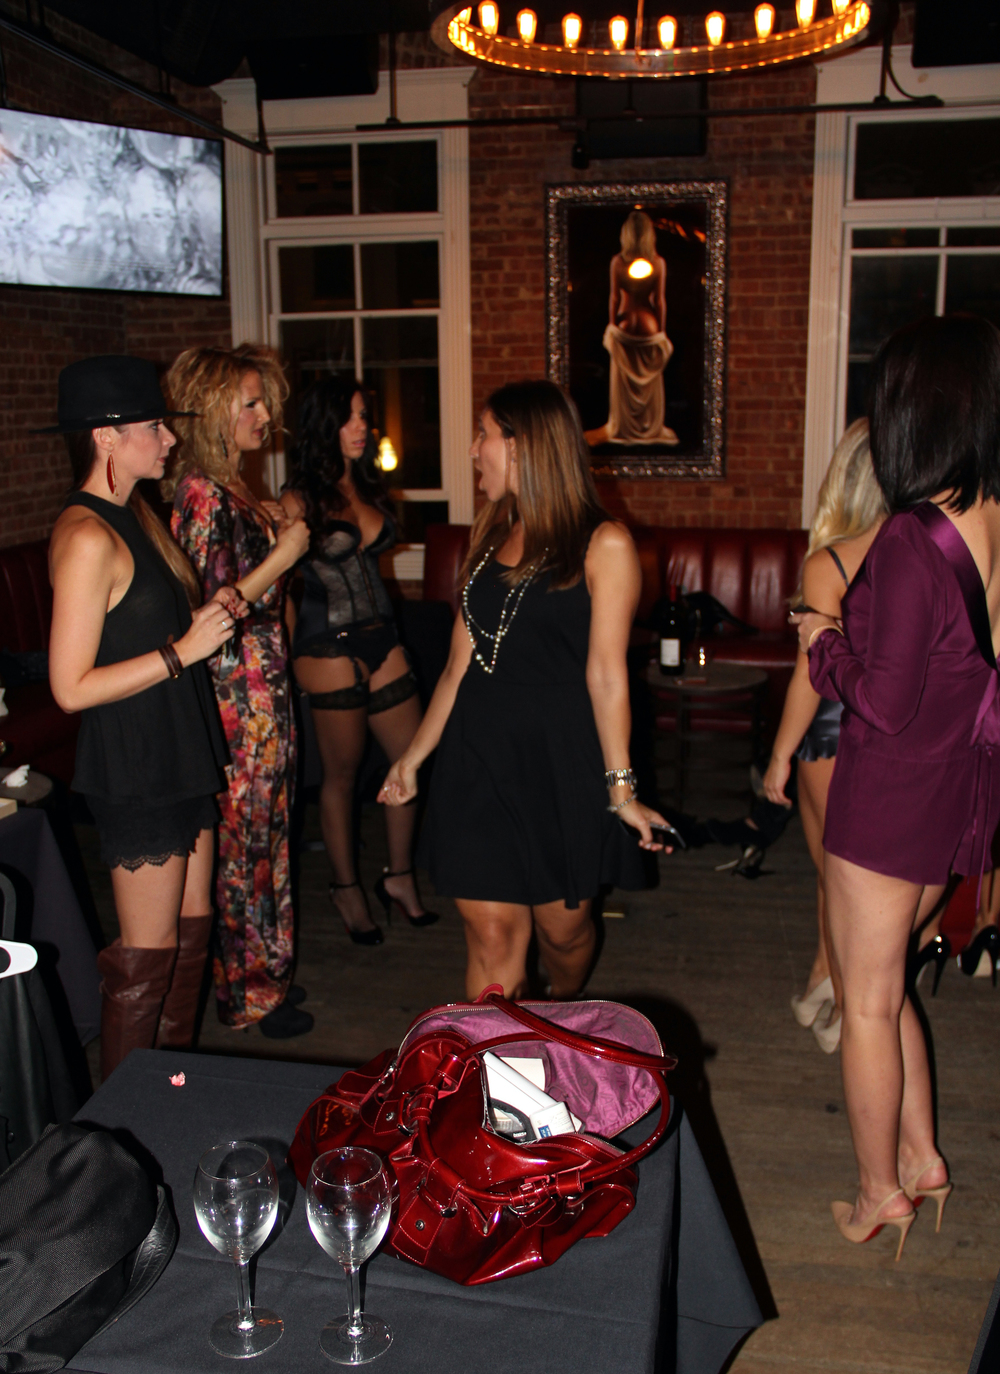 Angie, owner of Sweetest Sin Boutique directing the models before the show.